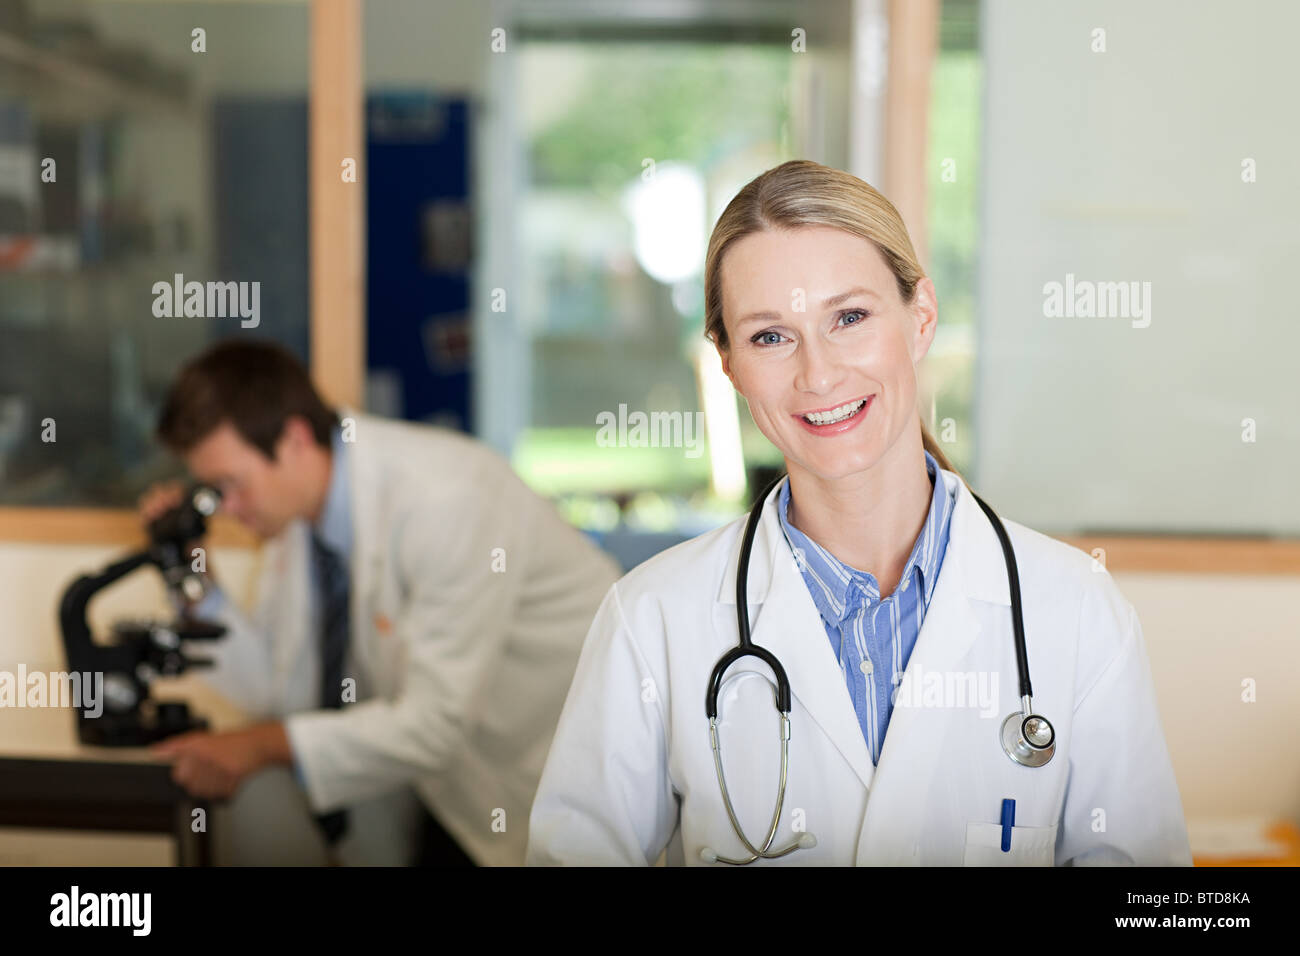 Doctor in laboratory - Stock Image